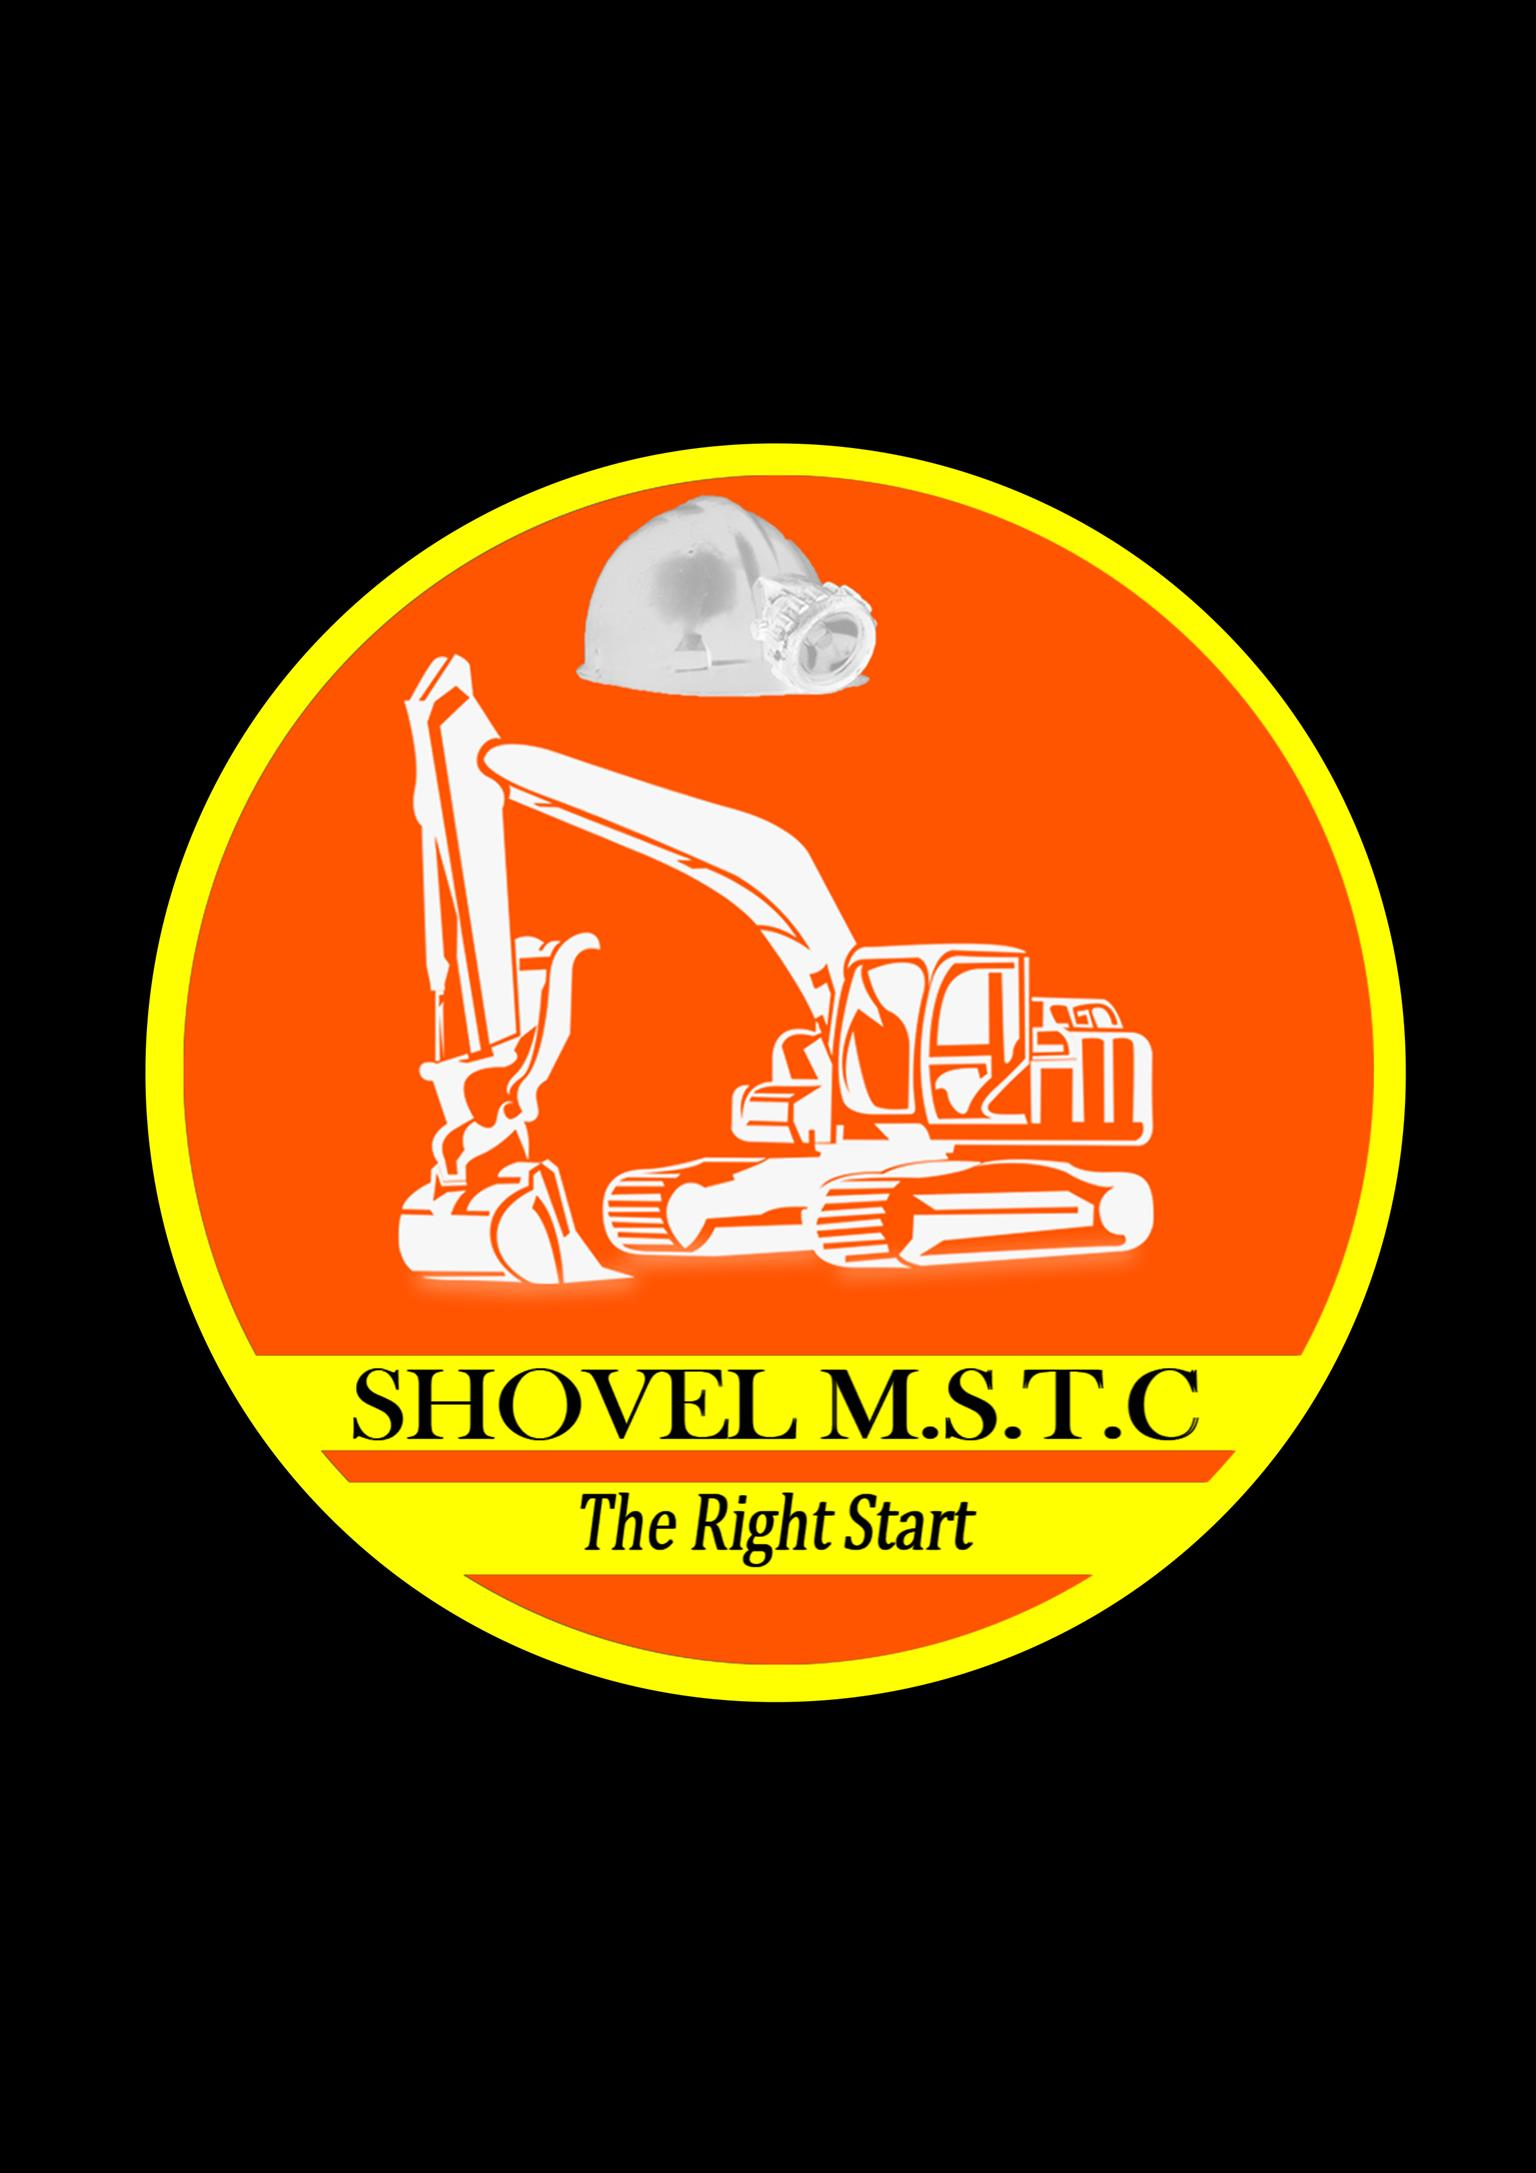 Shovel TLB 777 Welding Adelaide Eastern Cape +27734470170 +27765495365